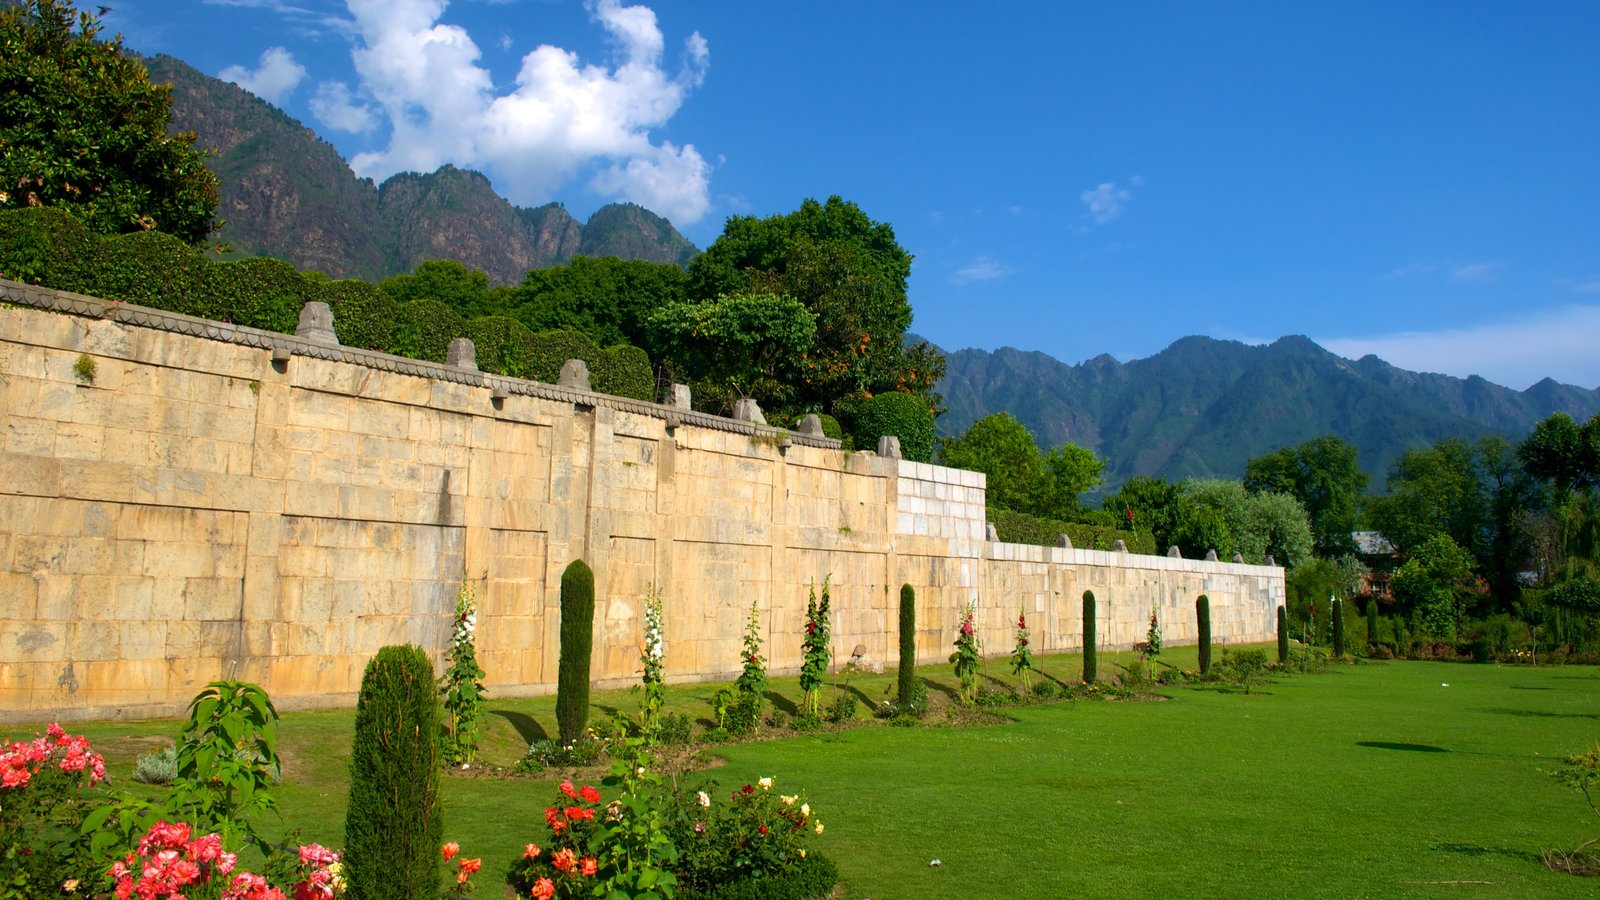 Mughal Gardens showing a park